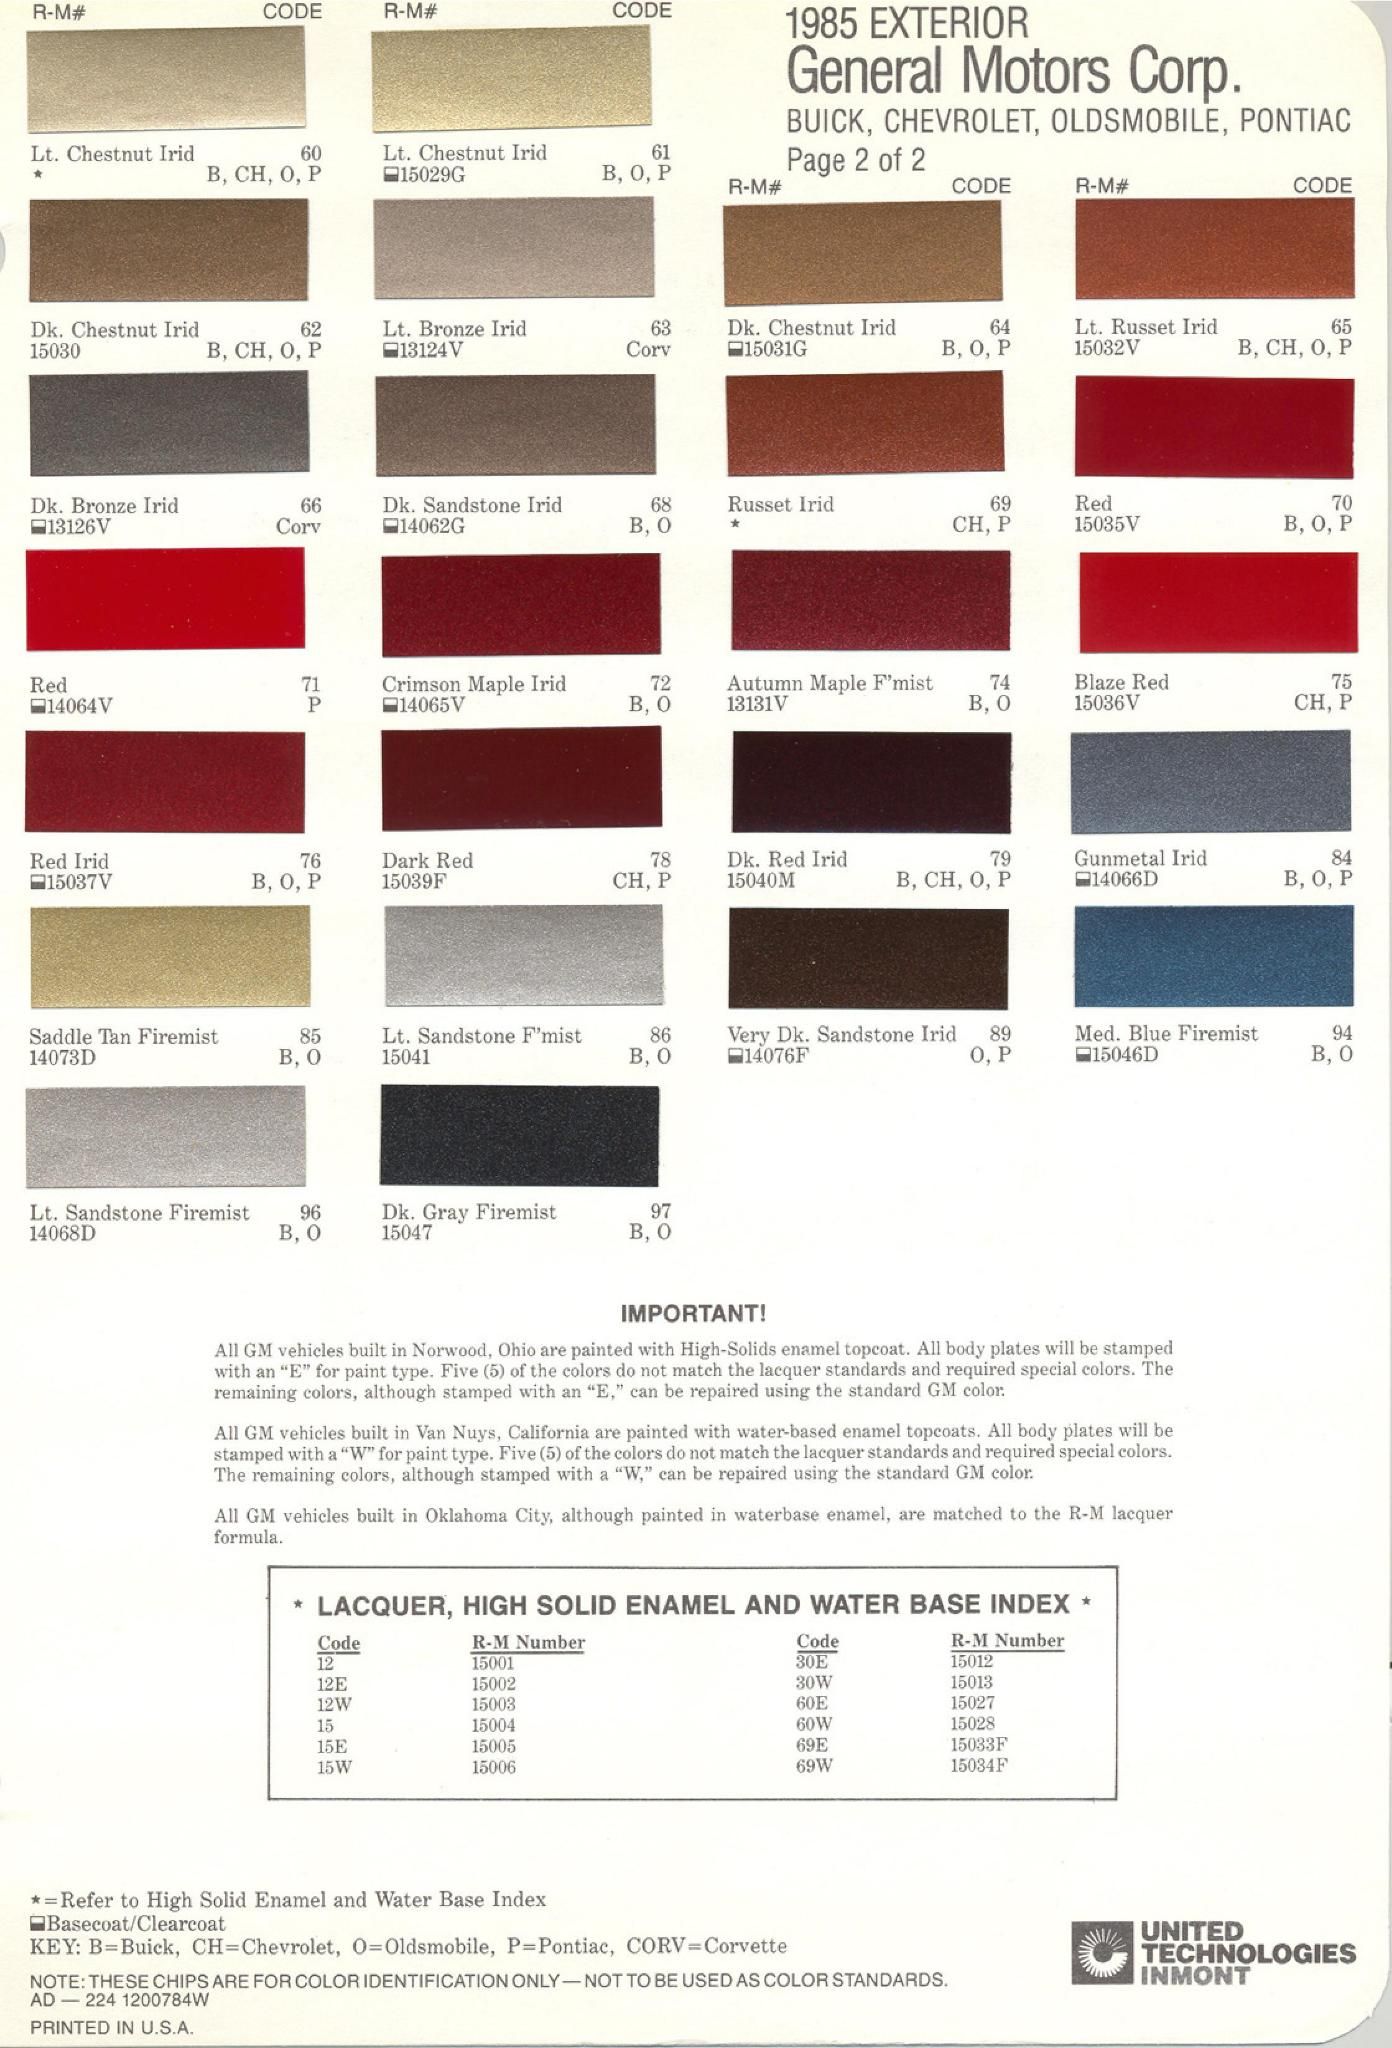 Colors and Color Codes used on General Motors in 1985